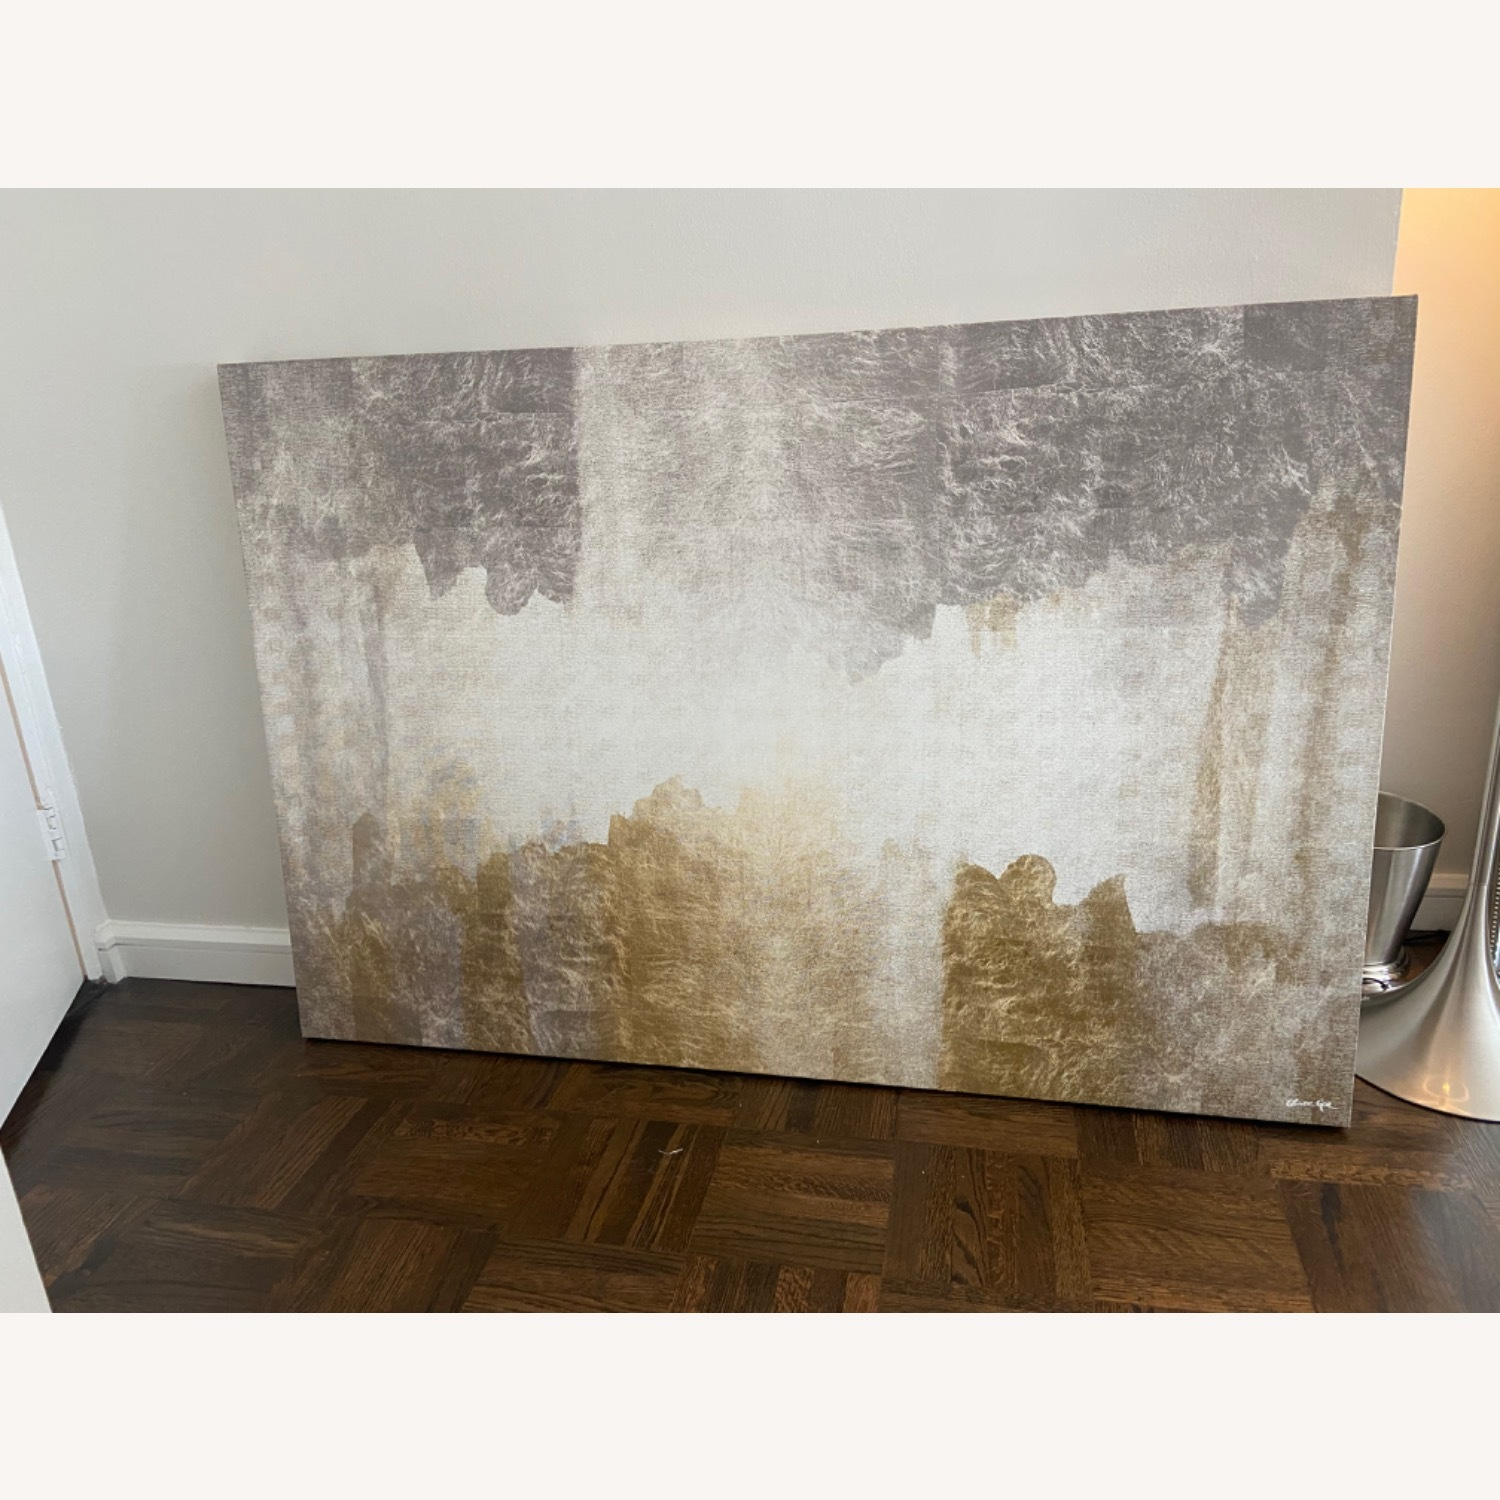 Oliver Gal Silver & Gold Absract Canvas Wall Art - image-4